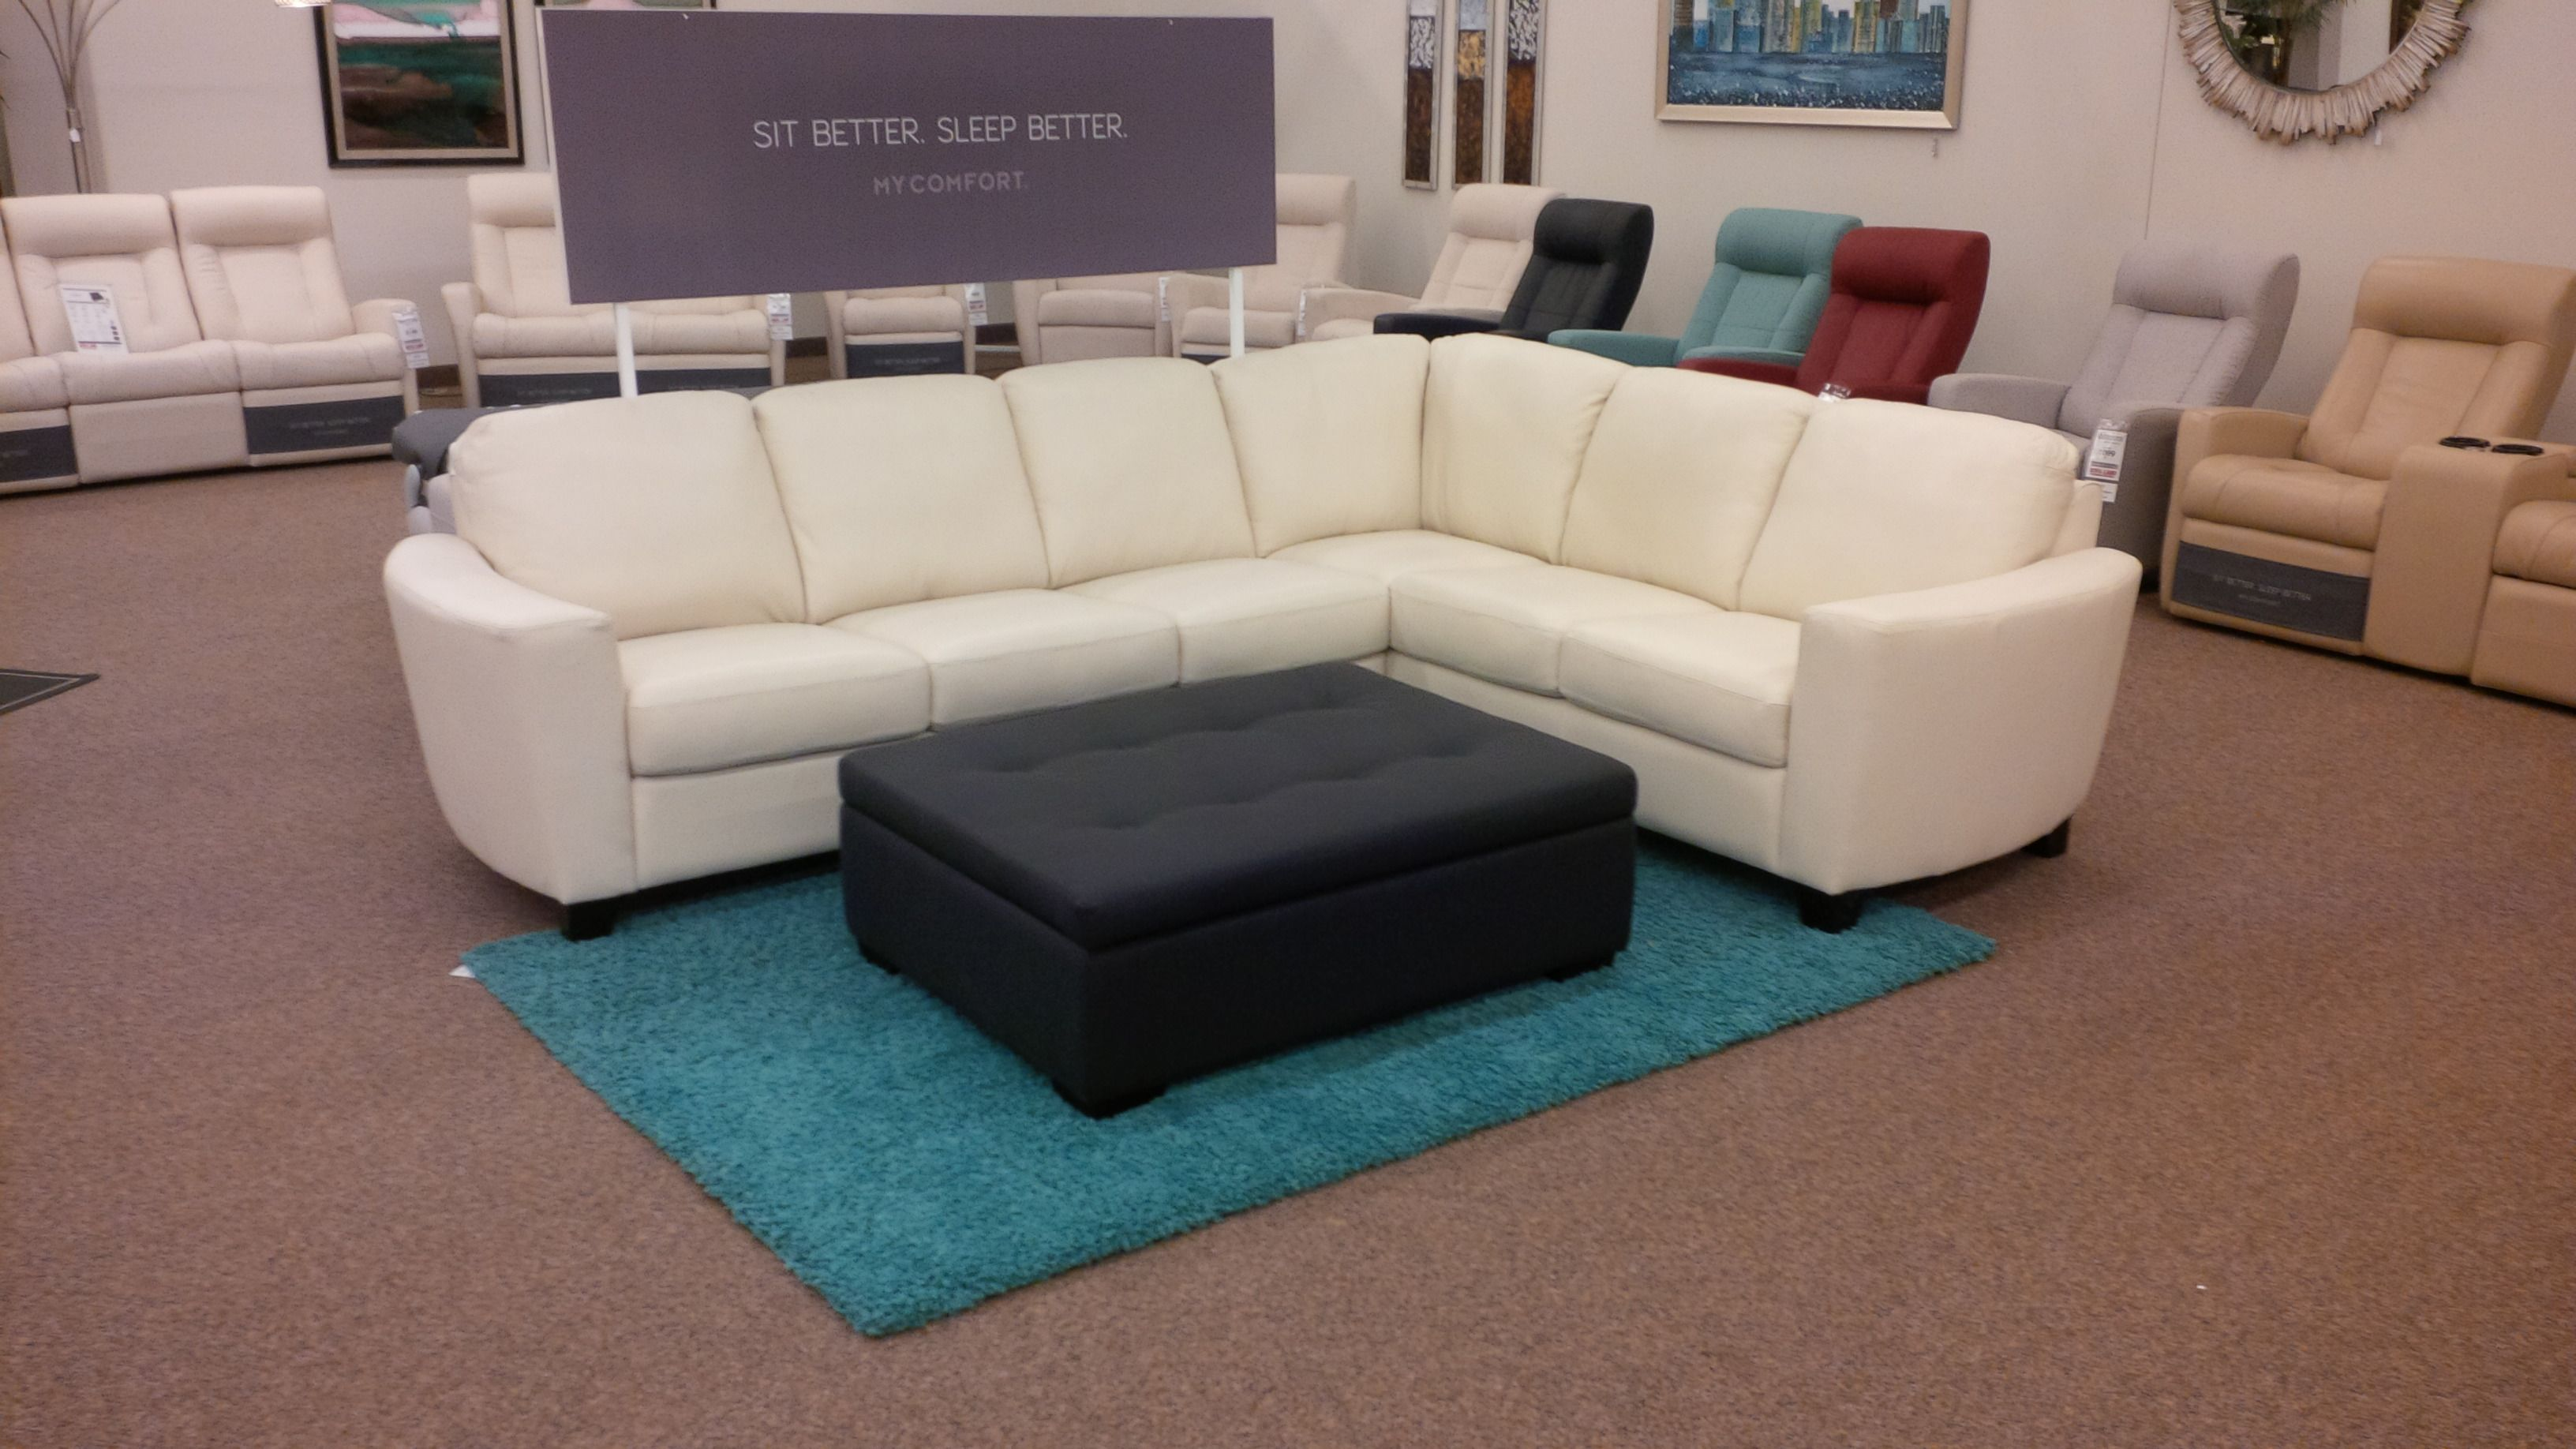 Nap time Our Kylan sectional provides just the right environment